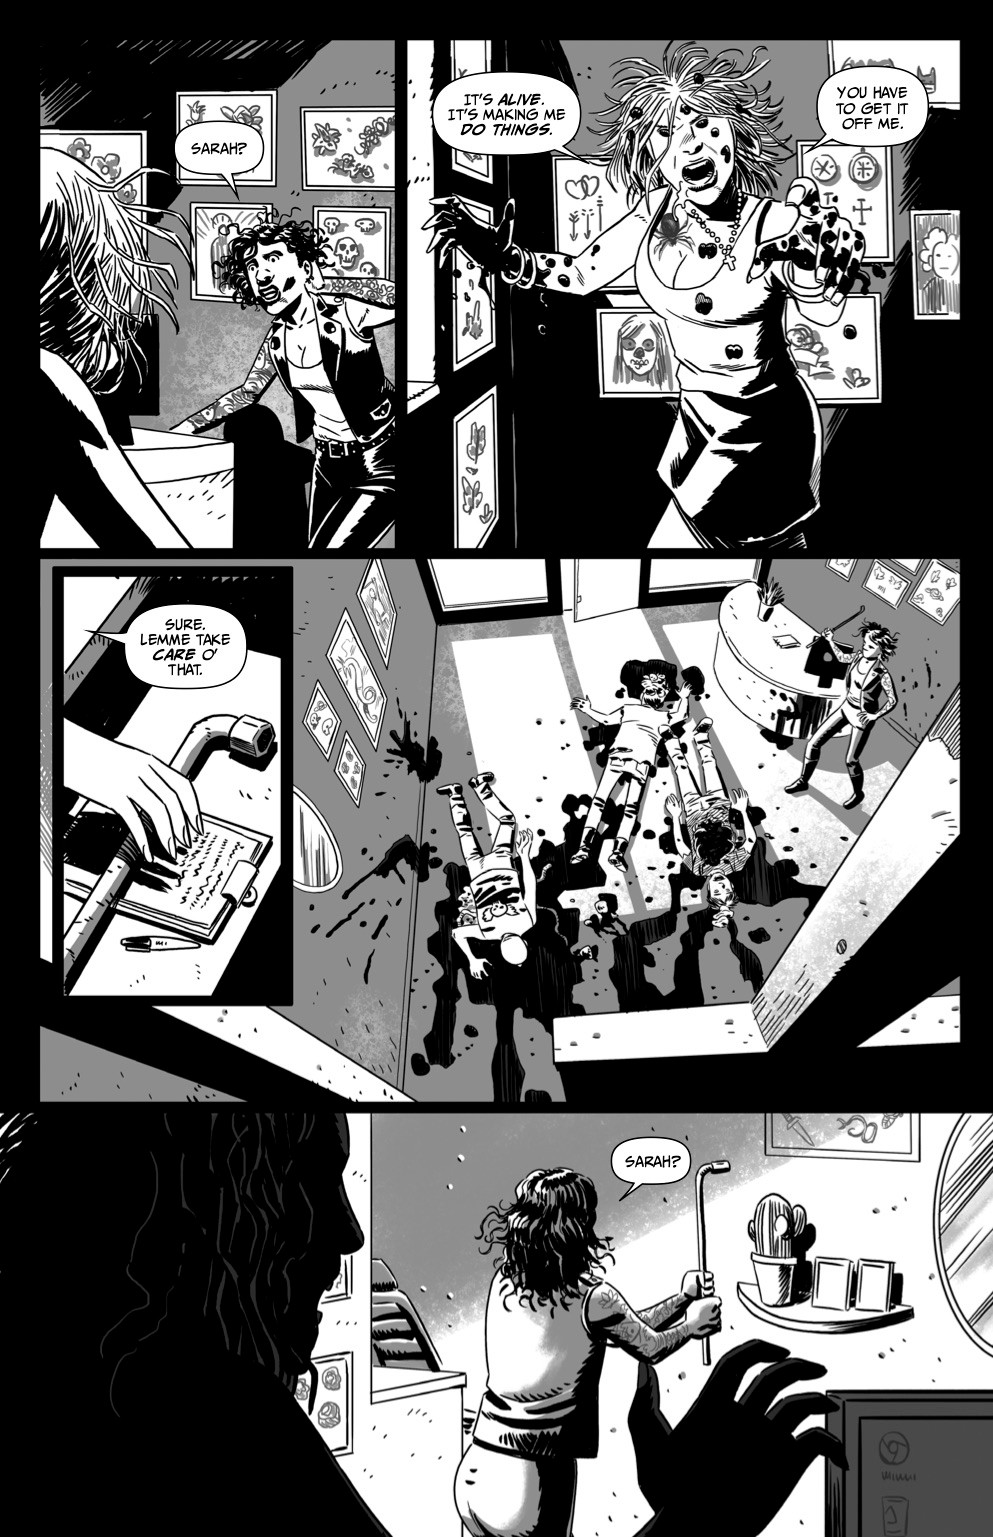 Scratcher, issue #1, page 7, Self-published, Ward/Romera